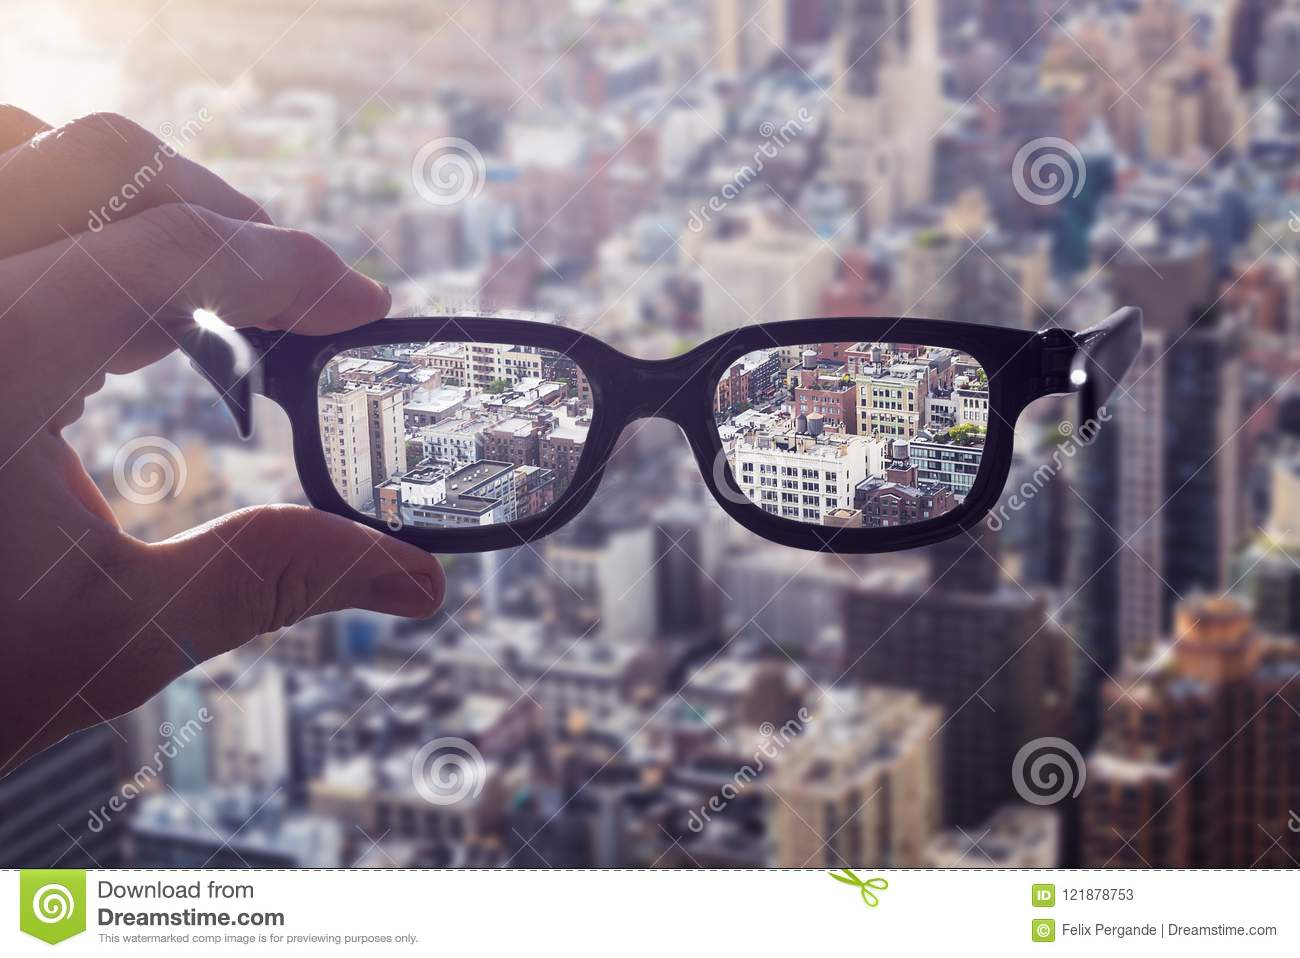 331a6bd2ec Cityscape focused in glasses lenses with hand holding the eyewear between  thumb and index finger